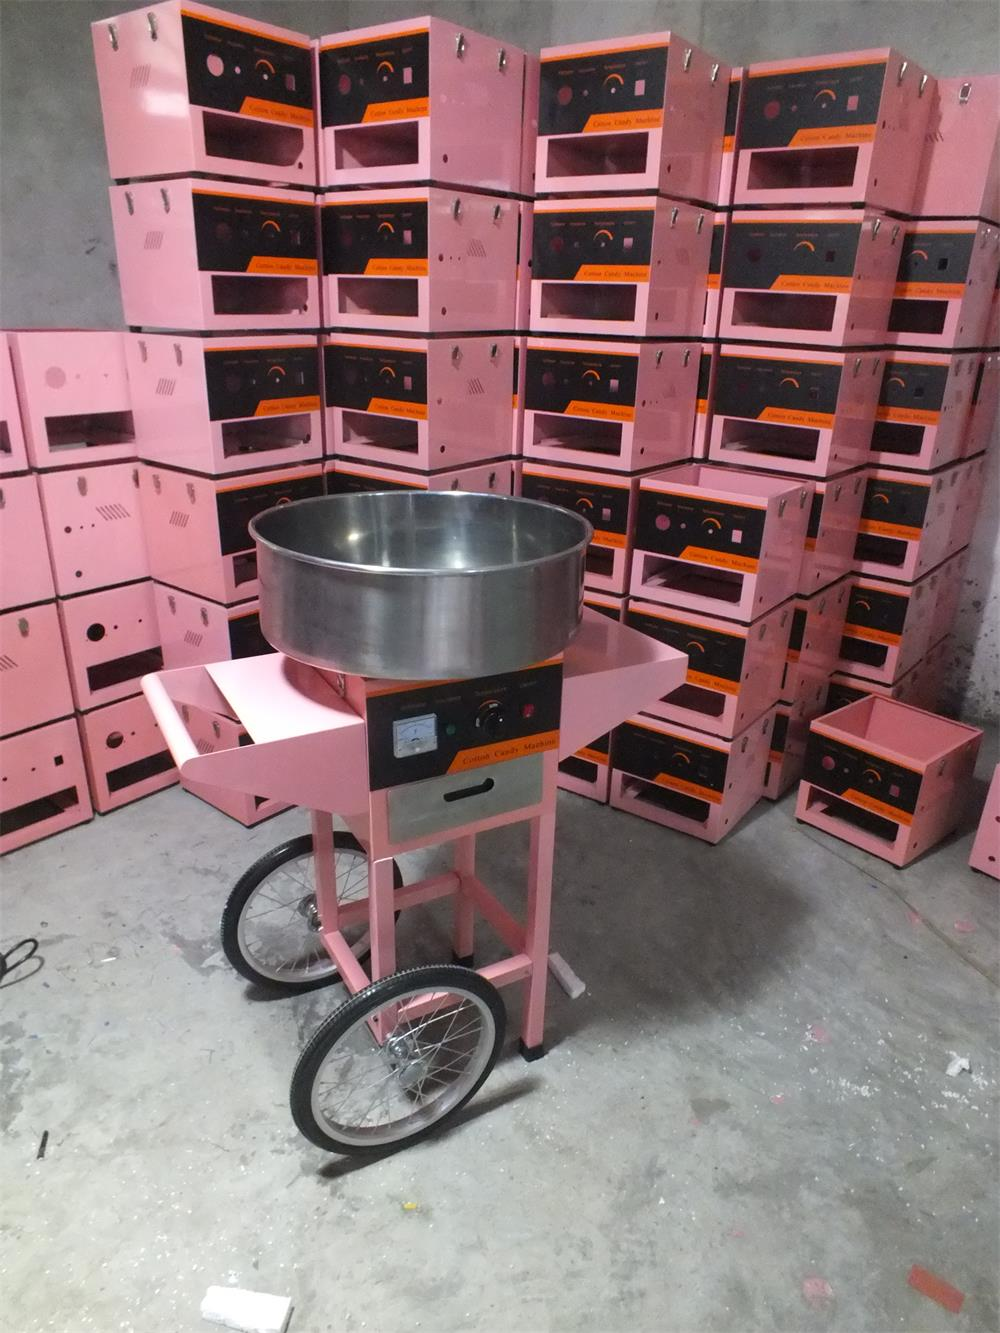 CE approved stainless steel cart spinning mini cotton candy machine many flavour professional cotton candy machine many flavour professional cotton candy machine cotton candy machine price low price cotton candy machine